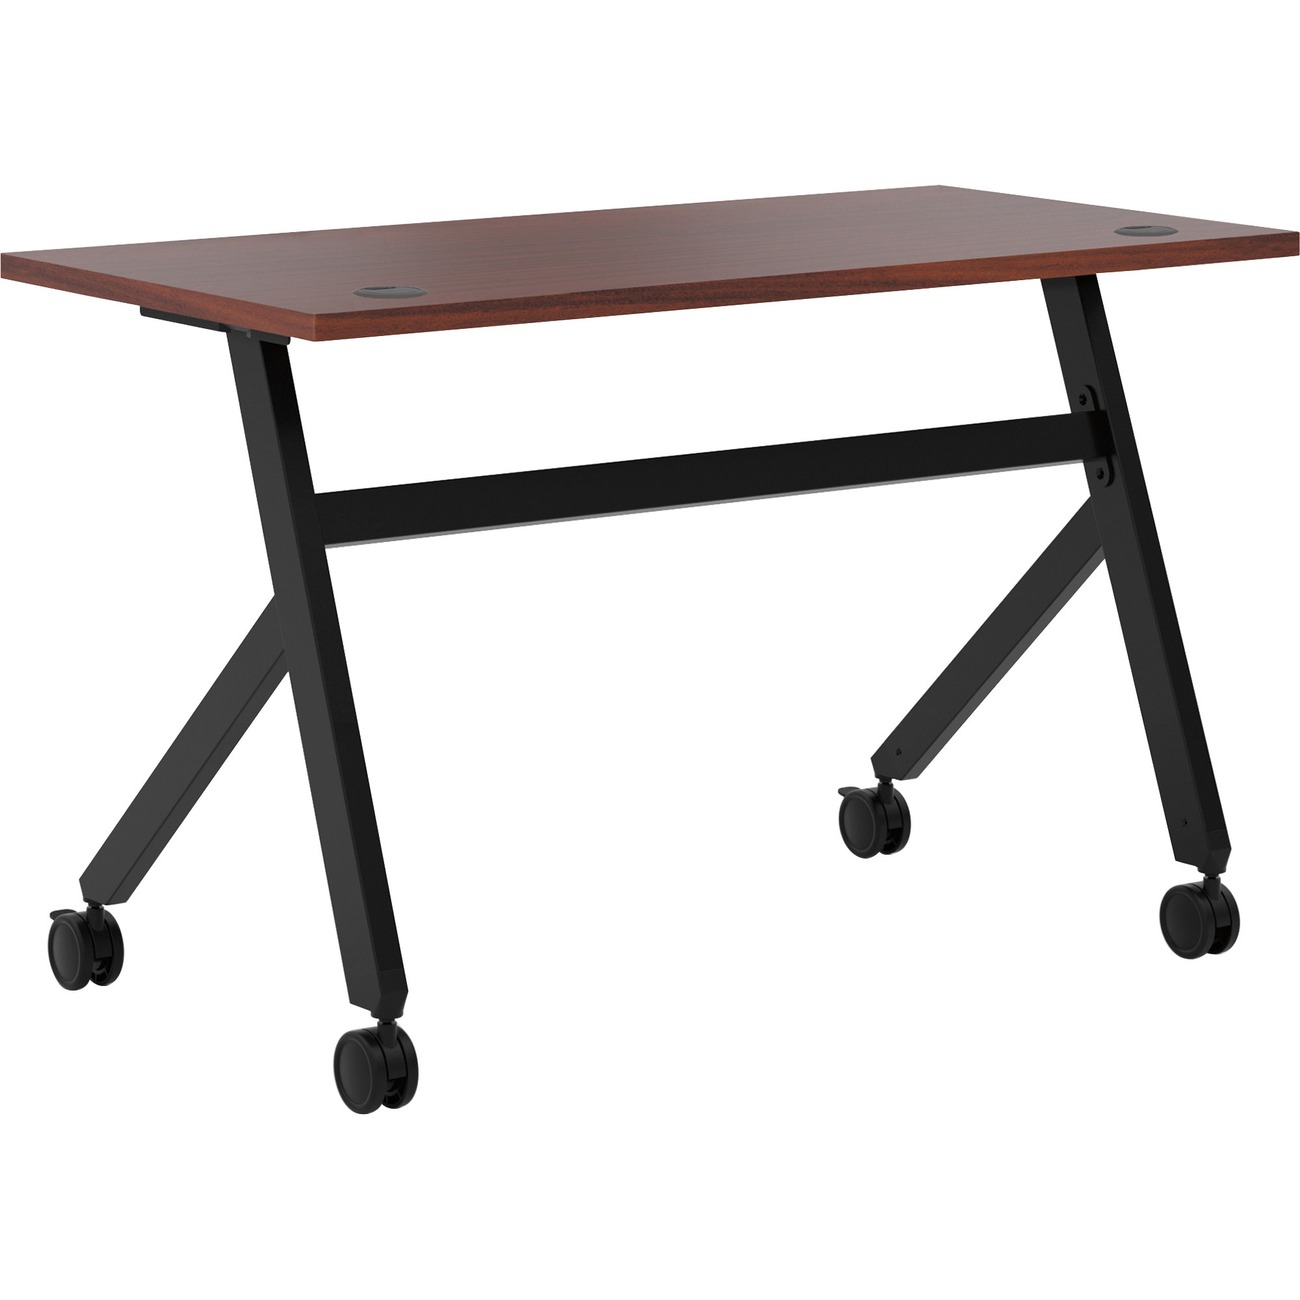 Multipurpose Table Supports Flexible Meeting E And Collaborative Work Use Multiple Tables Side By For Training Edge To Panel Discussions